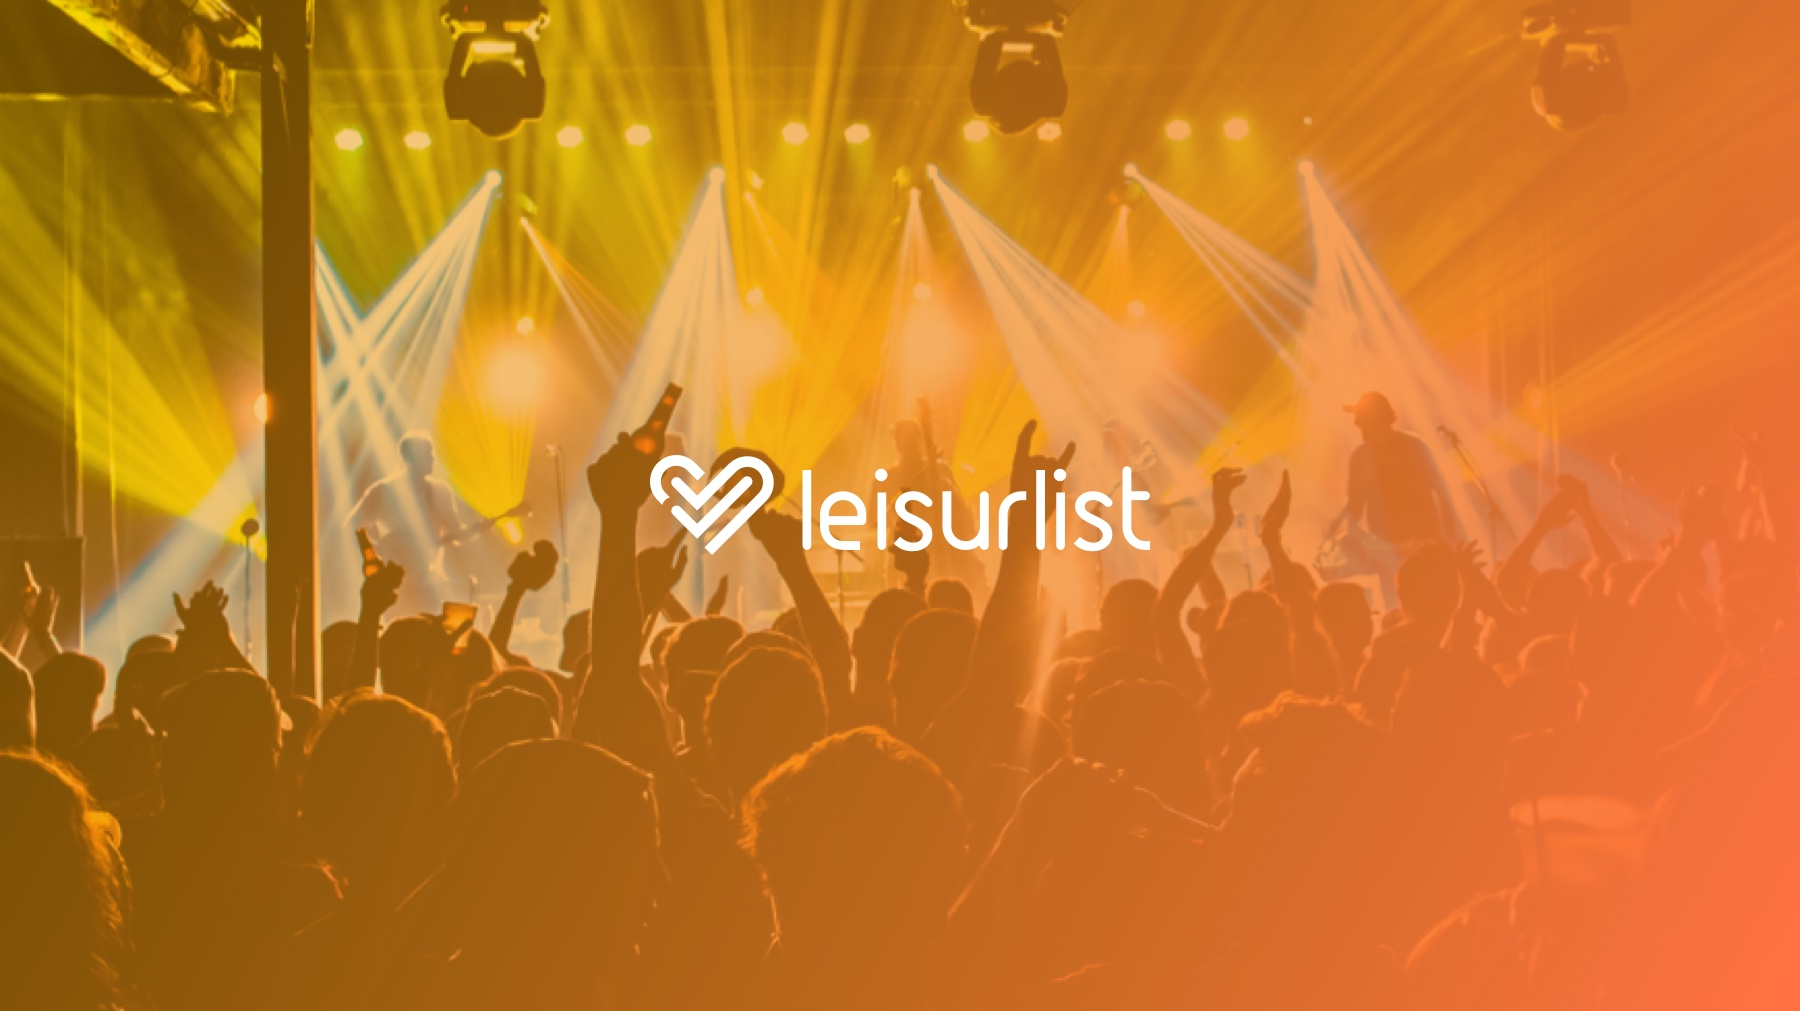 leisurlist logo header